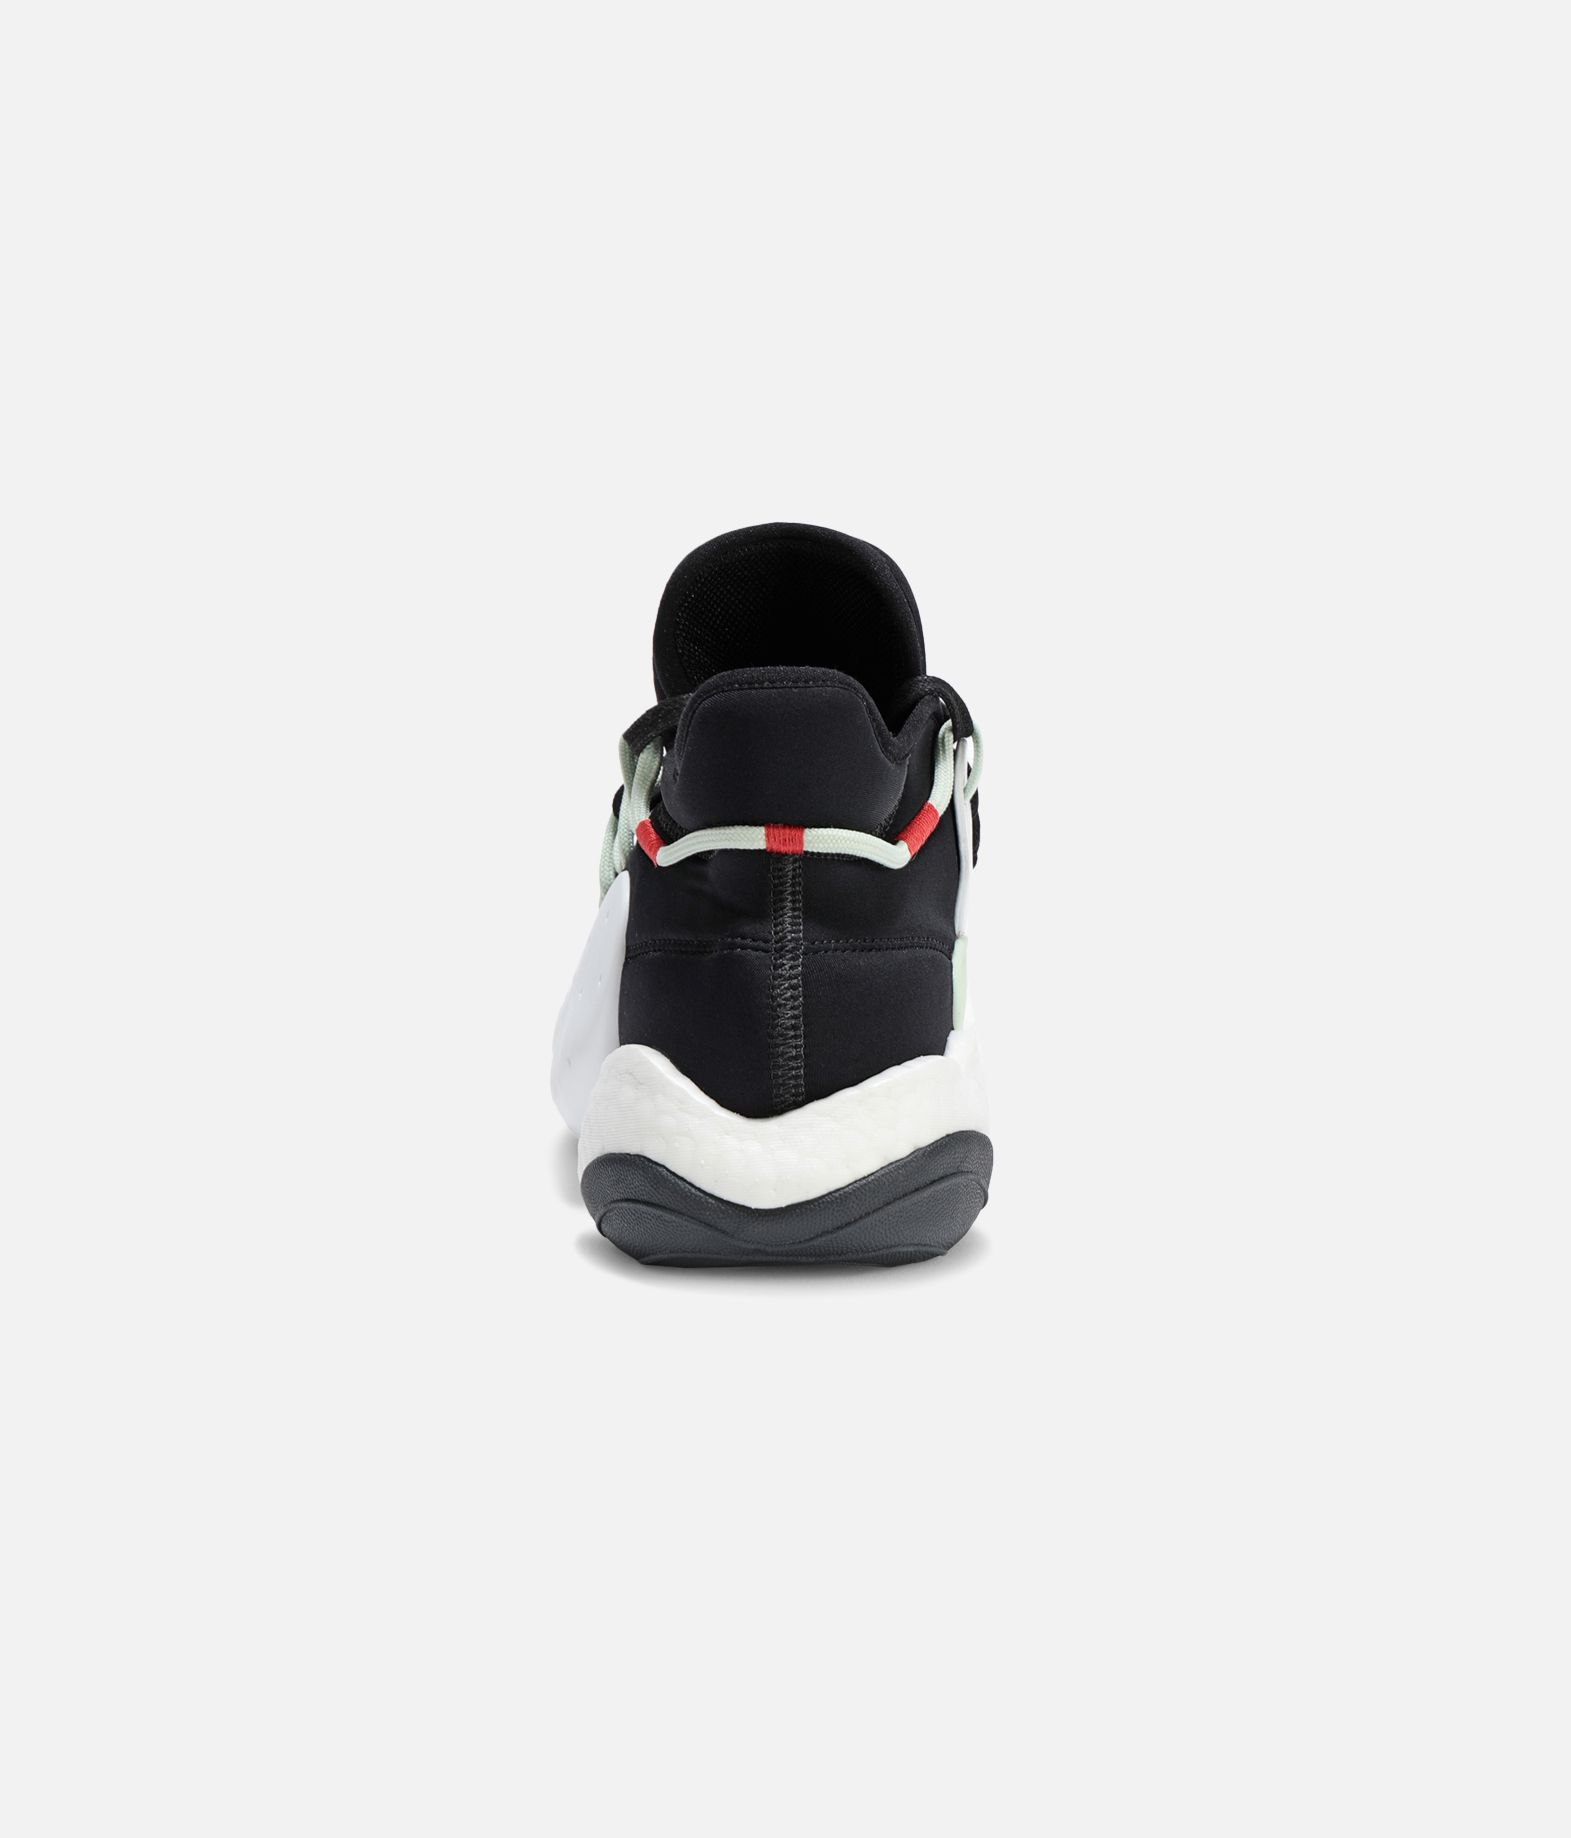 Y-3 Y-3 BYW BBALL Sneakers Uomo r